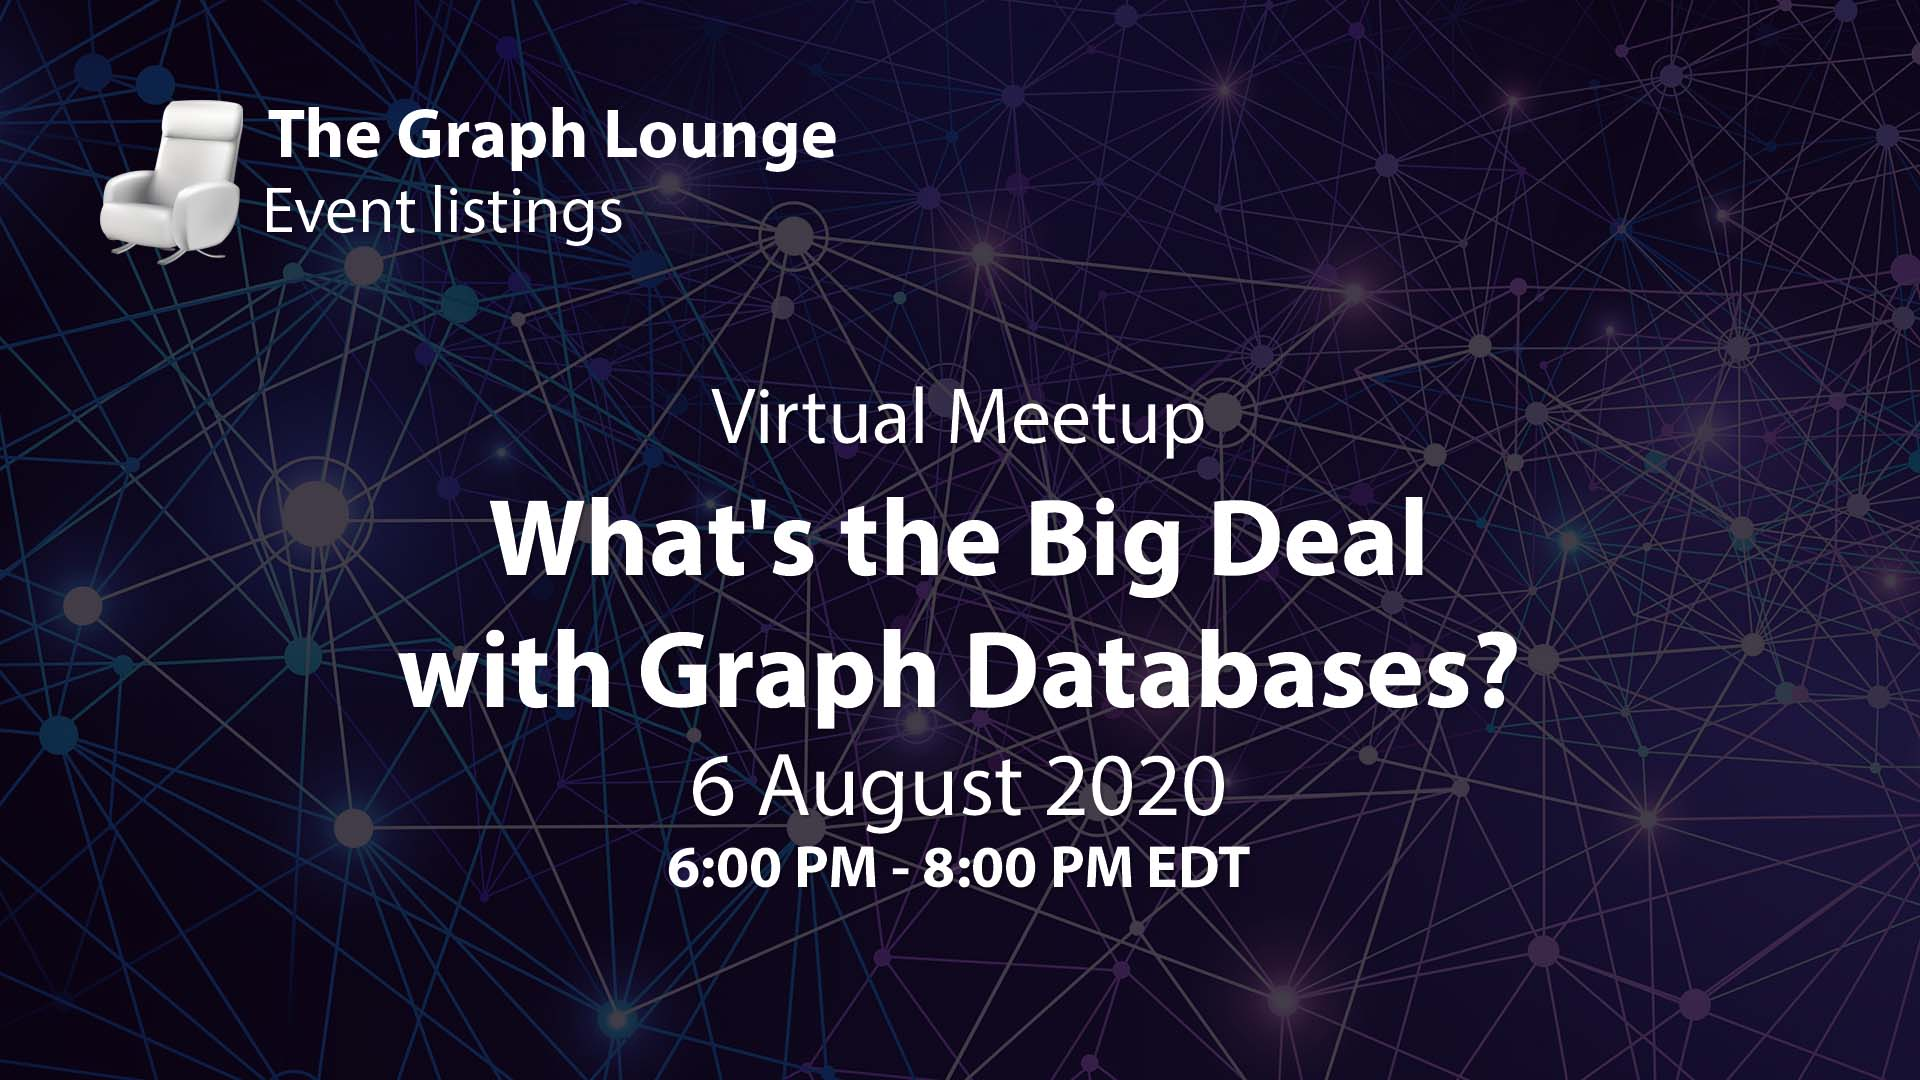 What's the Big Deal with Graph Databases?